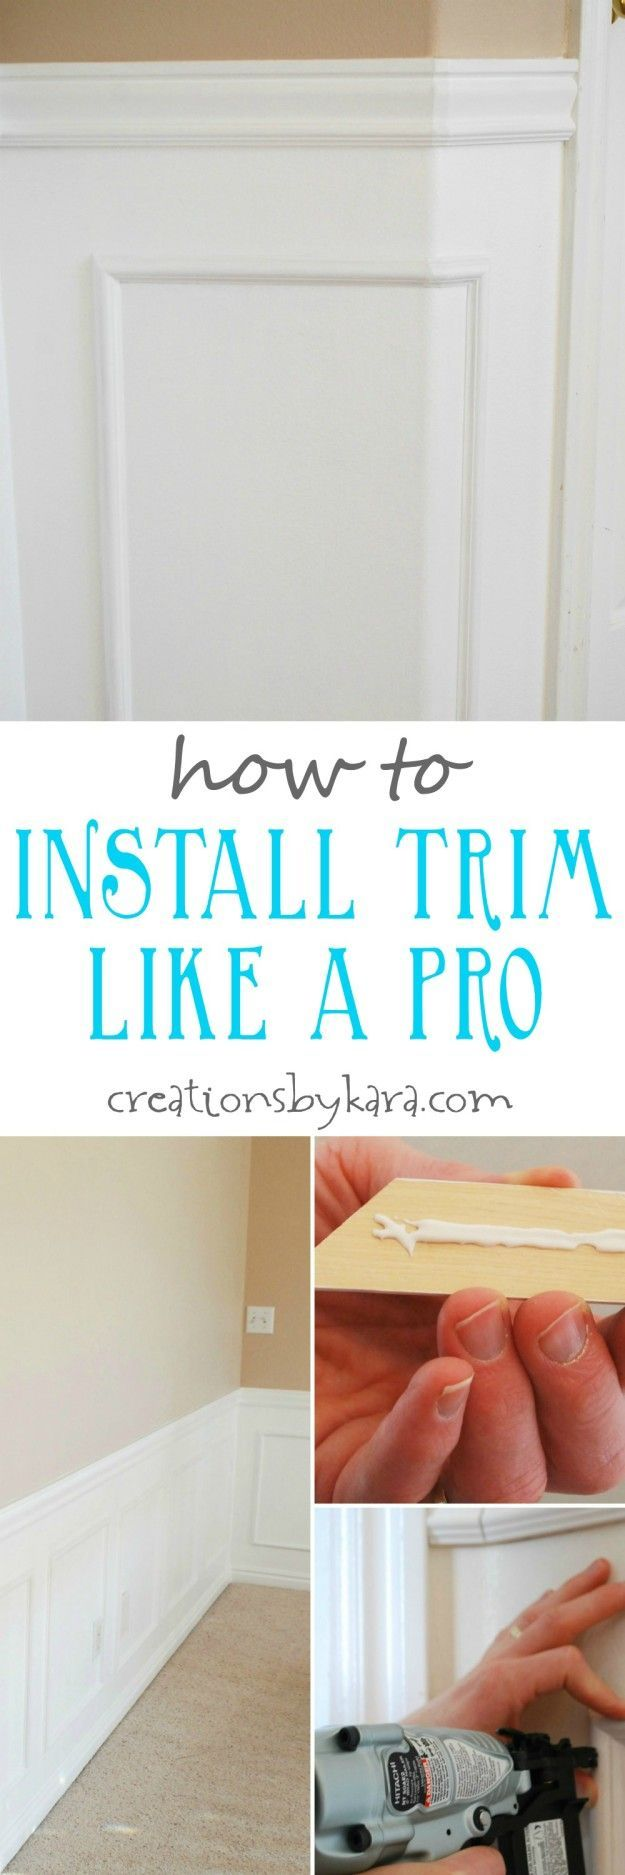 Captivating Tips And Tricks For Installing Molding And Trim Like A Pro. A Great DIY  Tutorial